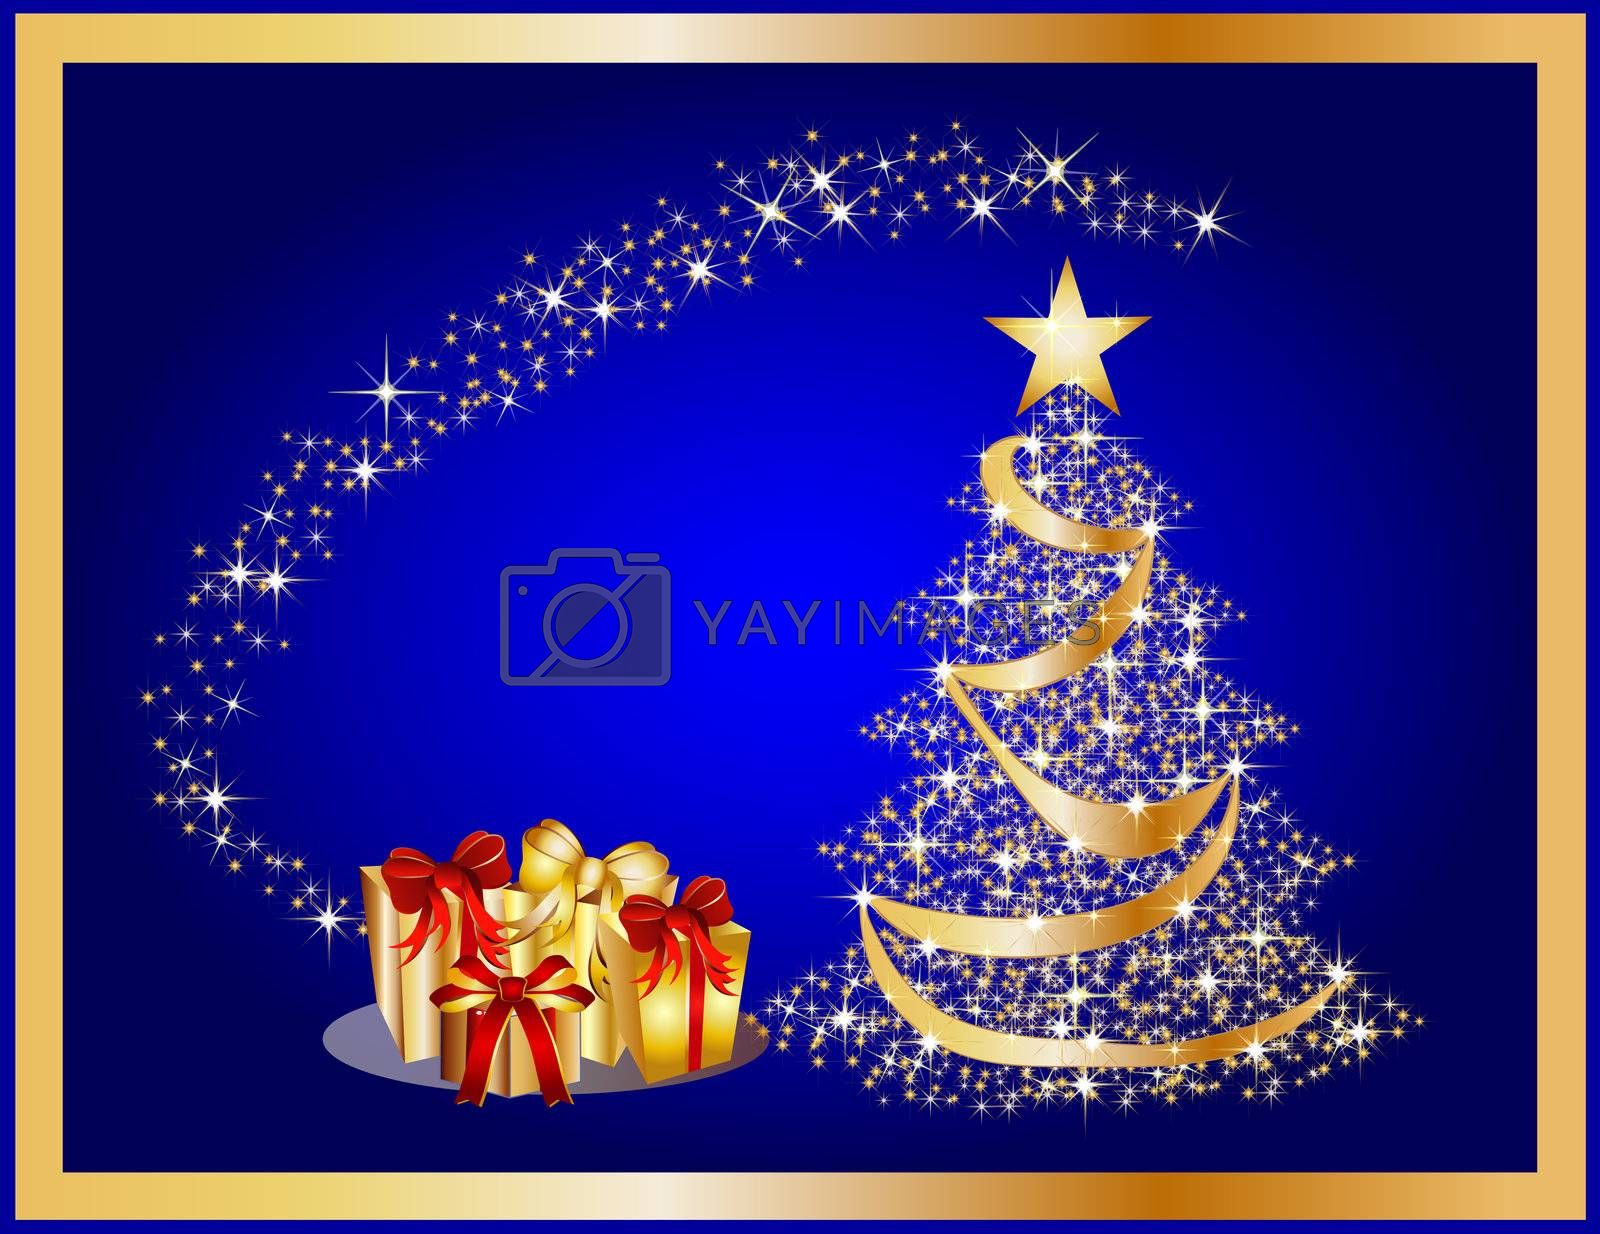 golden christmas tree on blue background by peromarketing